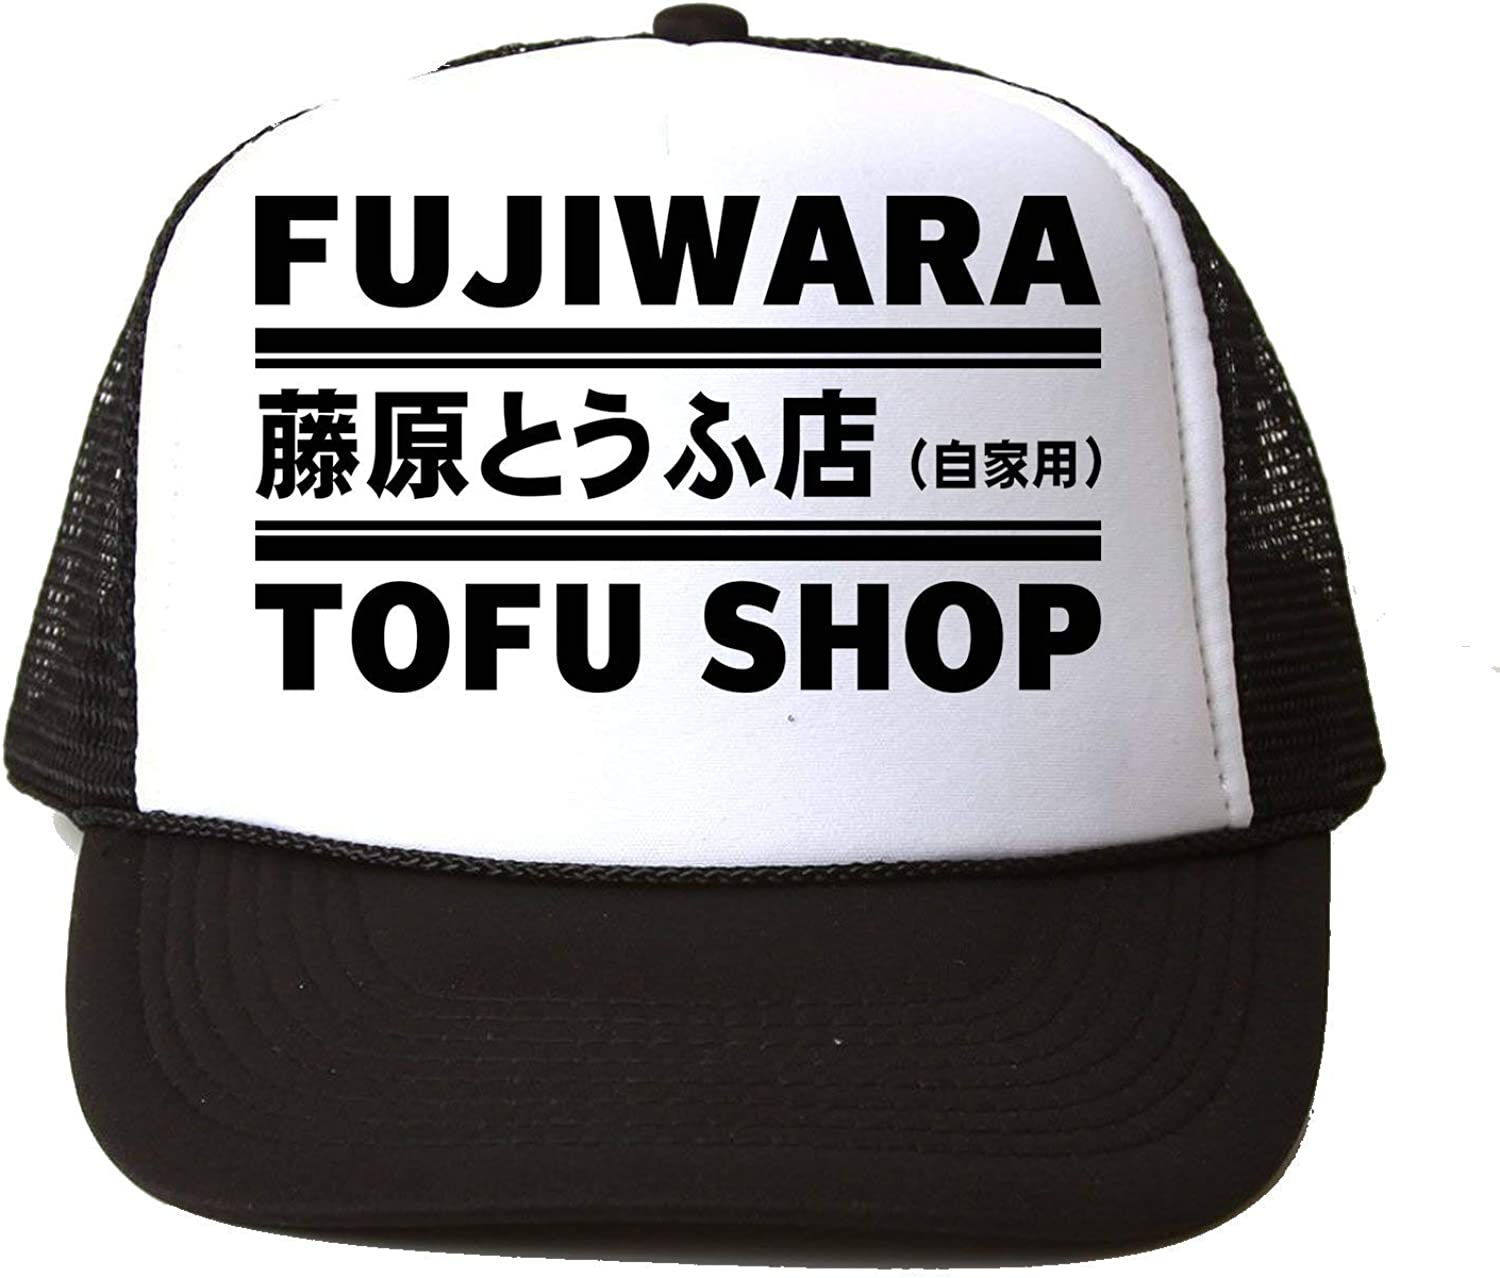 Fujiwara Tofu Shop Baseball Cap Hat Gorra Unisex One Size: Amazon ...